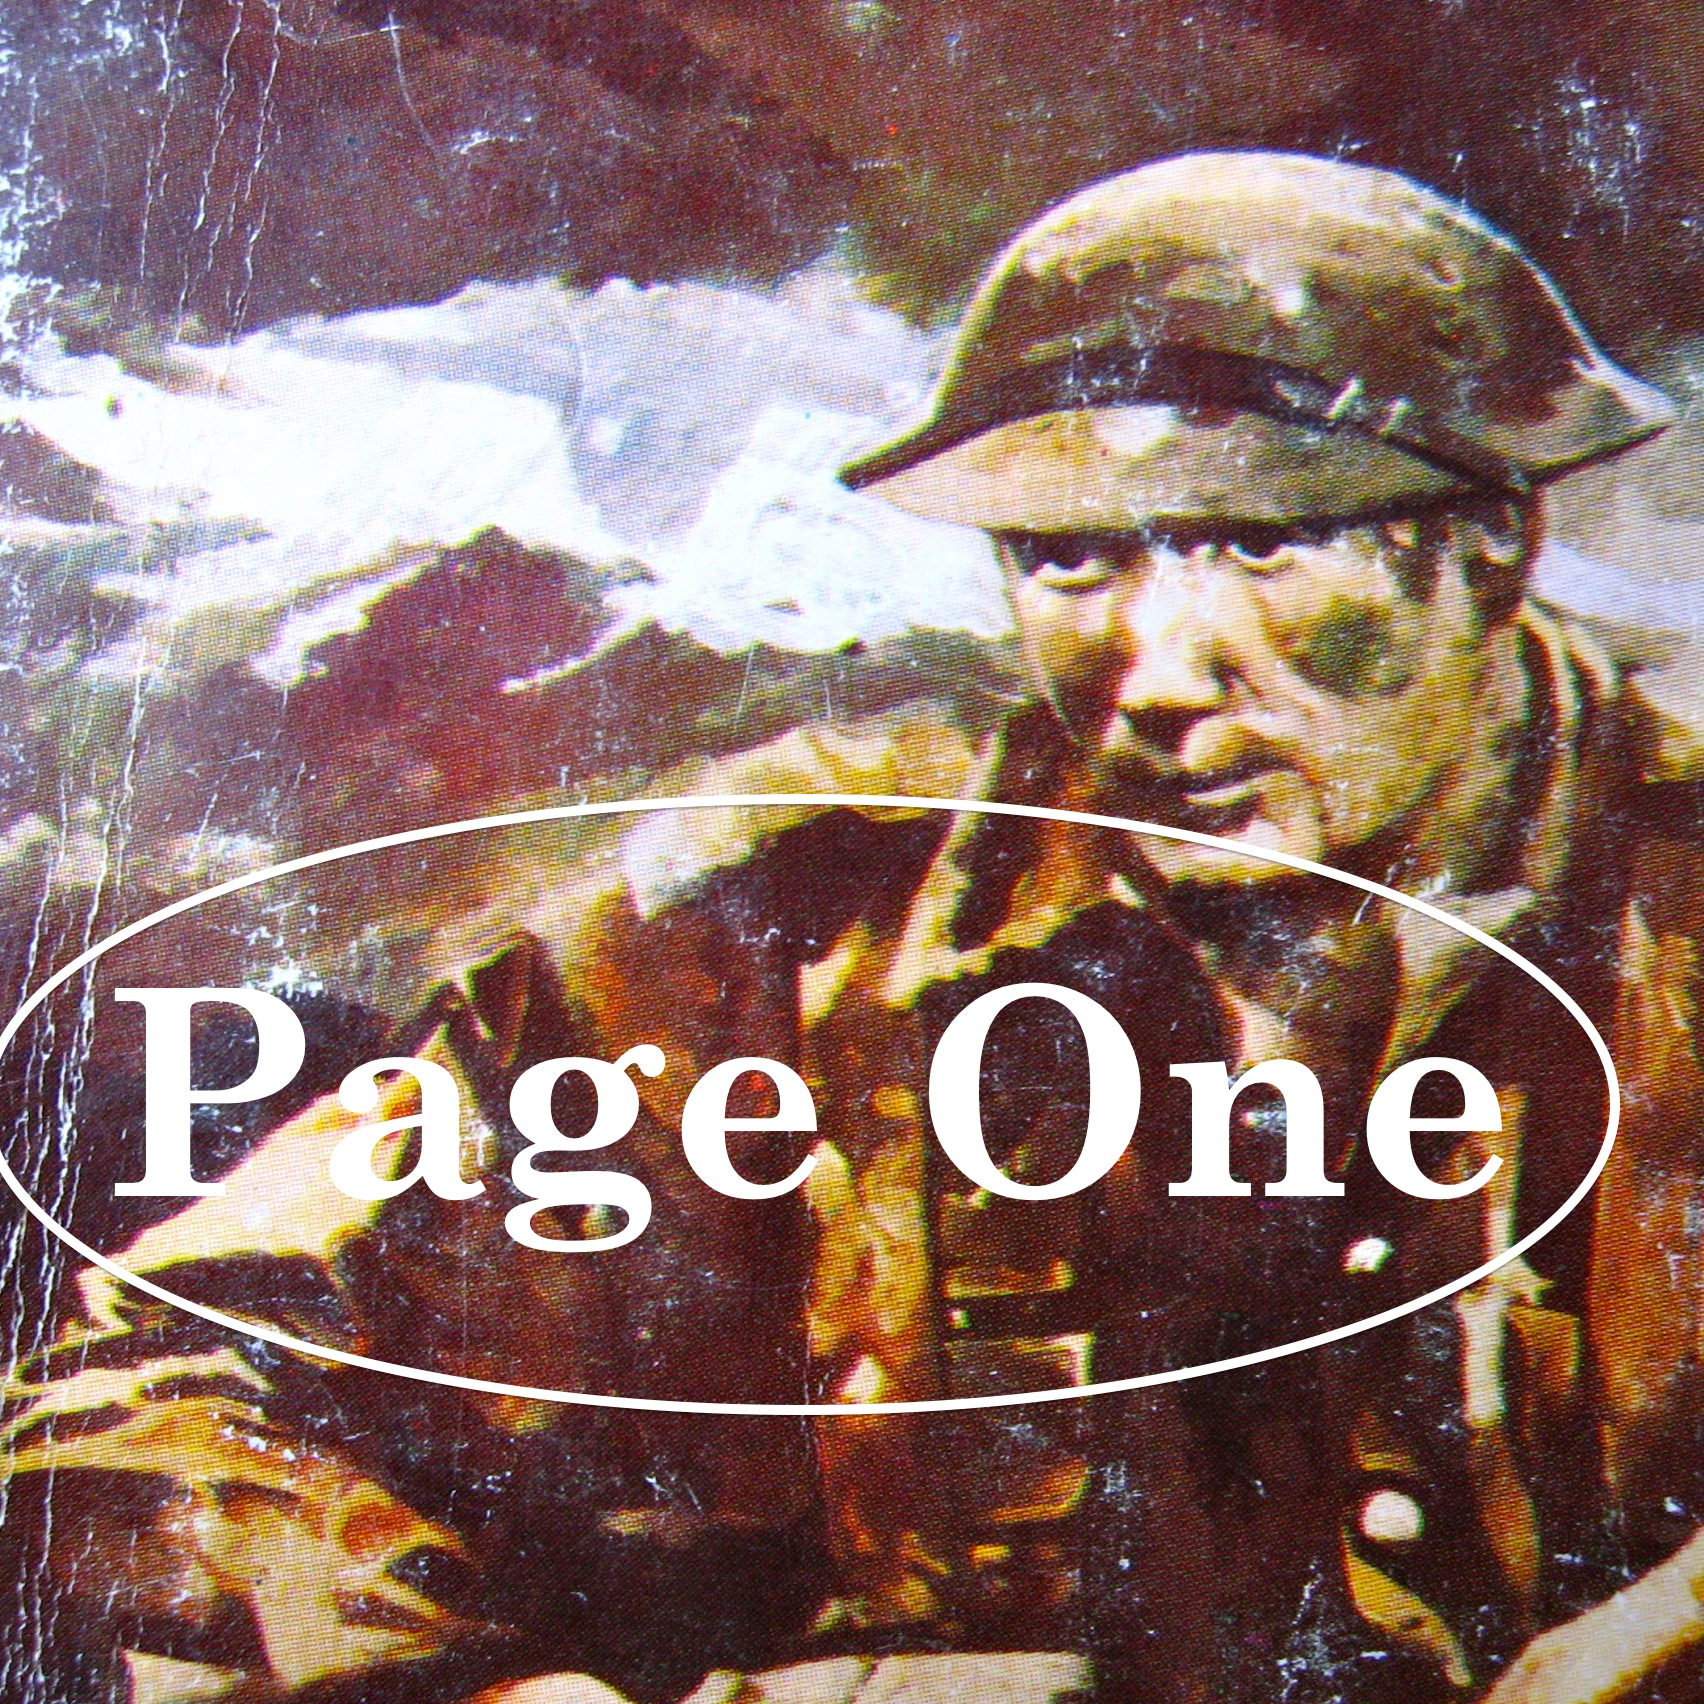 Episode image is a detail from the cover of The Lousier War by W. A. Tucker, published in 1974 by New English Library.